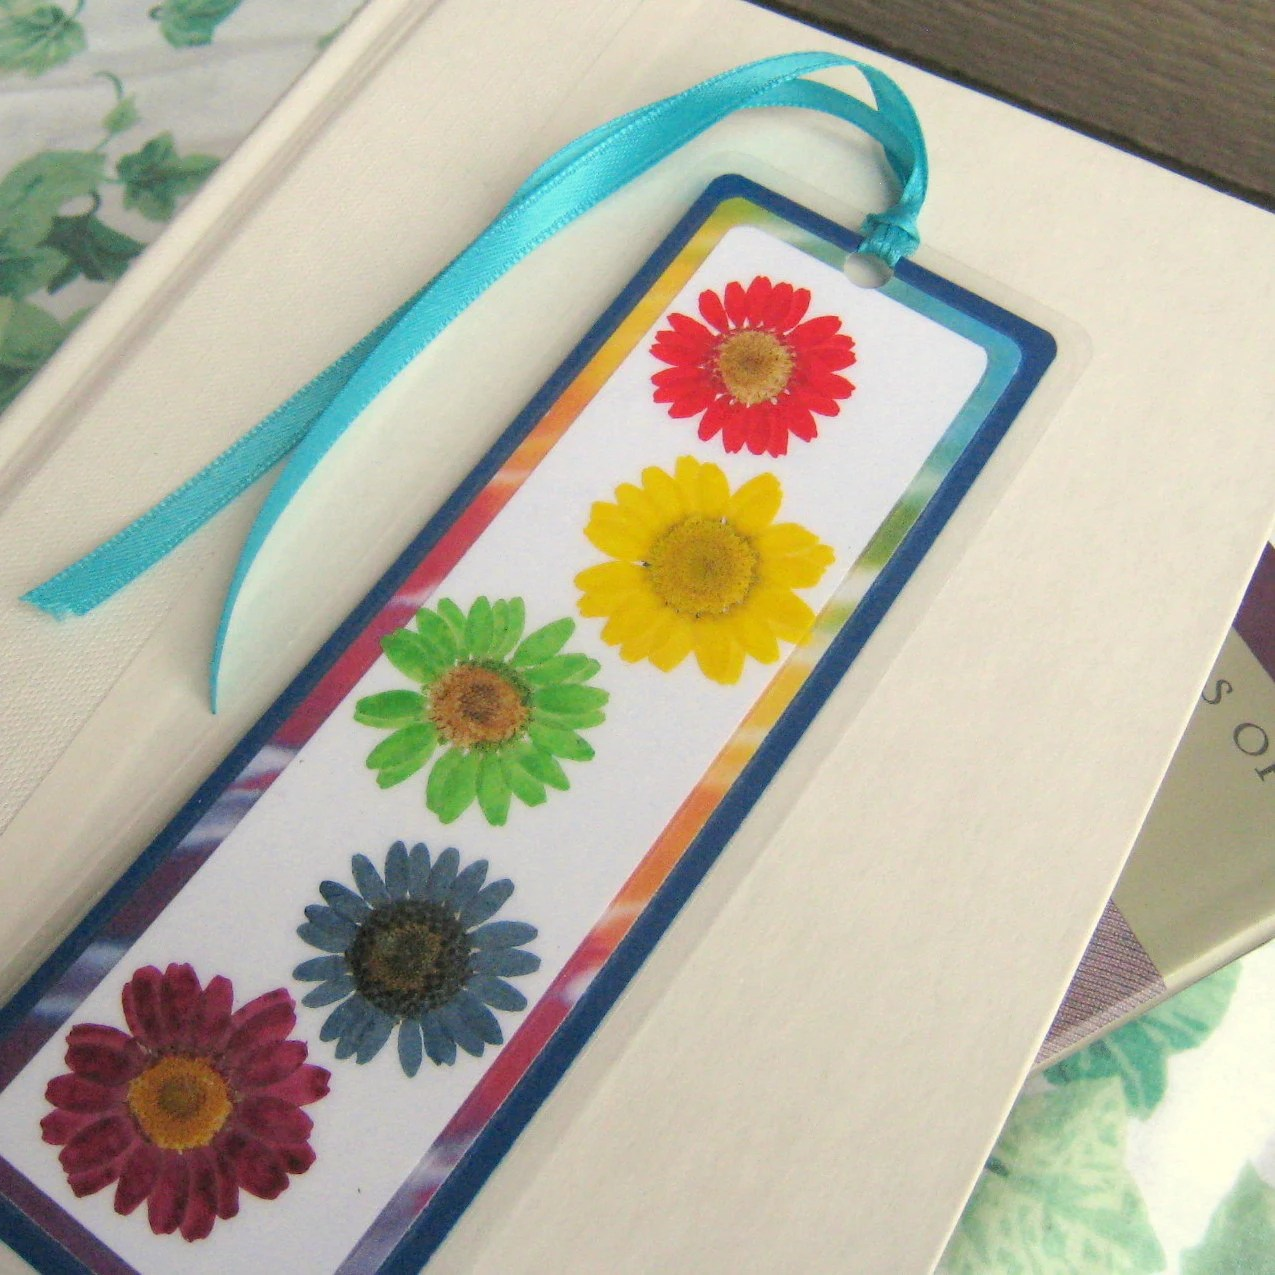 Pressed Flower Daisy Multi-Color Tie-Dyed Rainbow Dasies Floral Laminated Bookmark - BGardenCreations